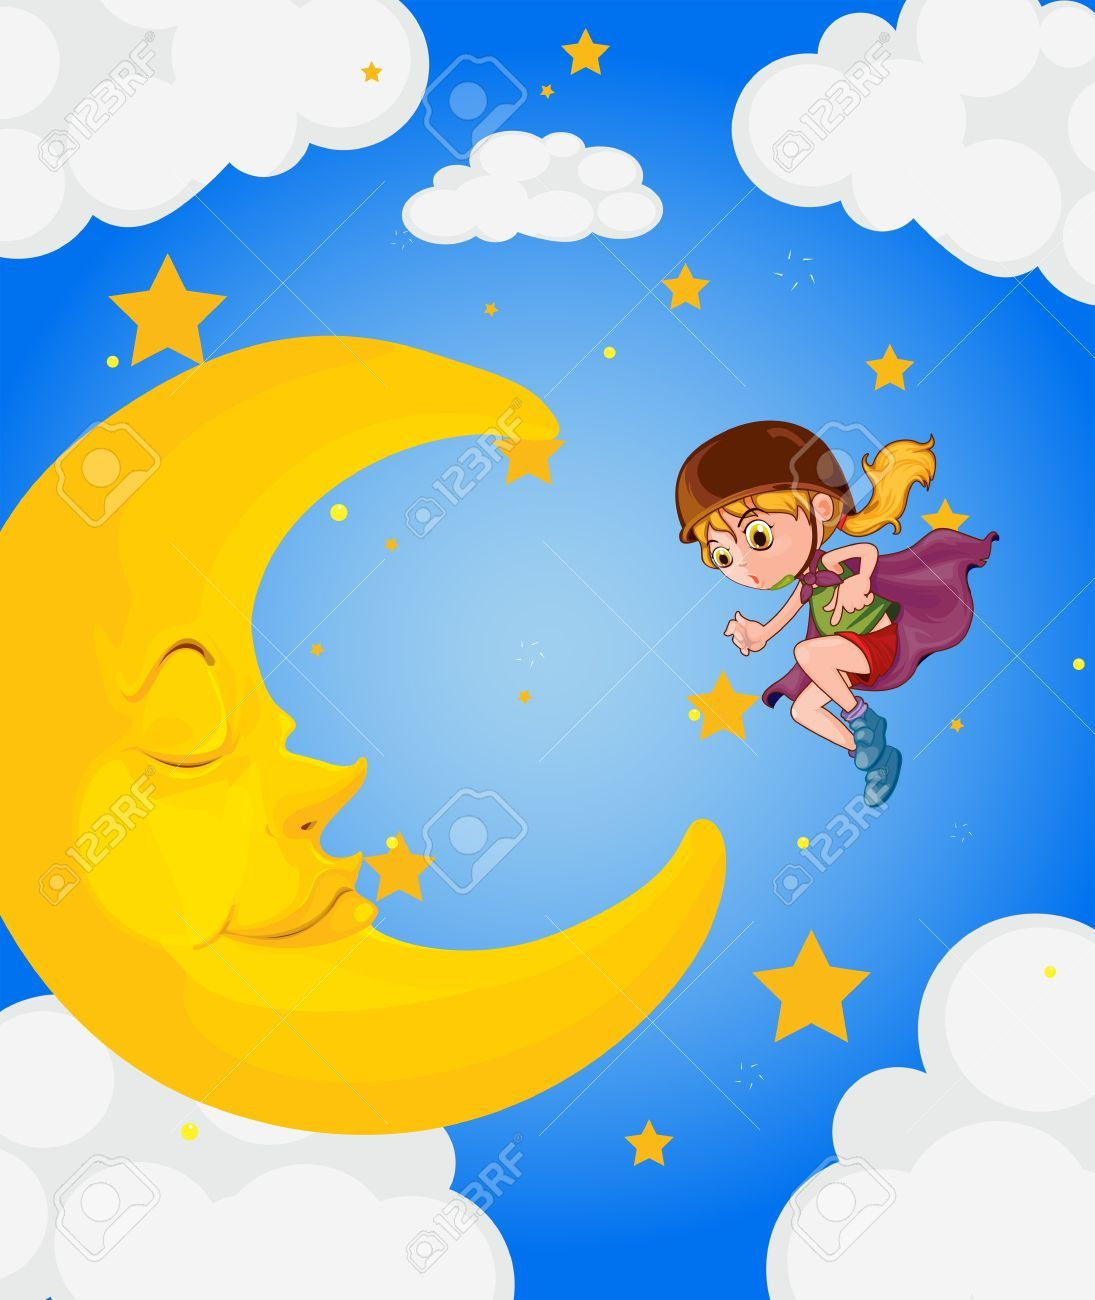 moon clipart cliparts stock vector and royalty free moon